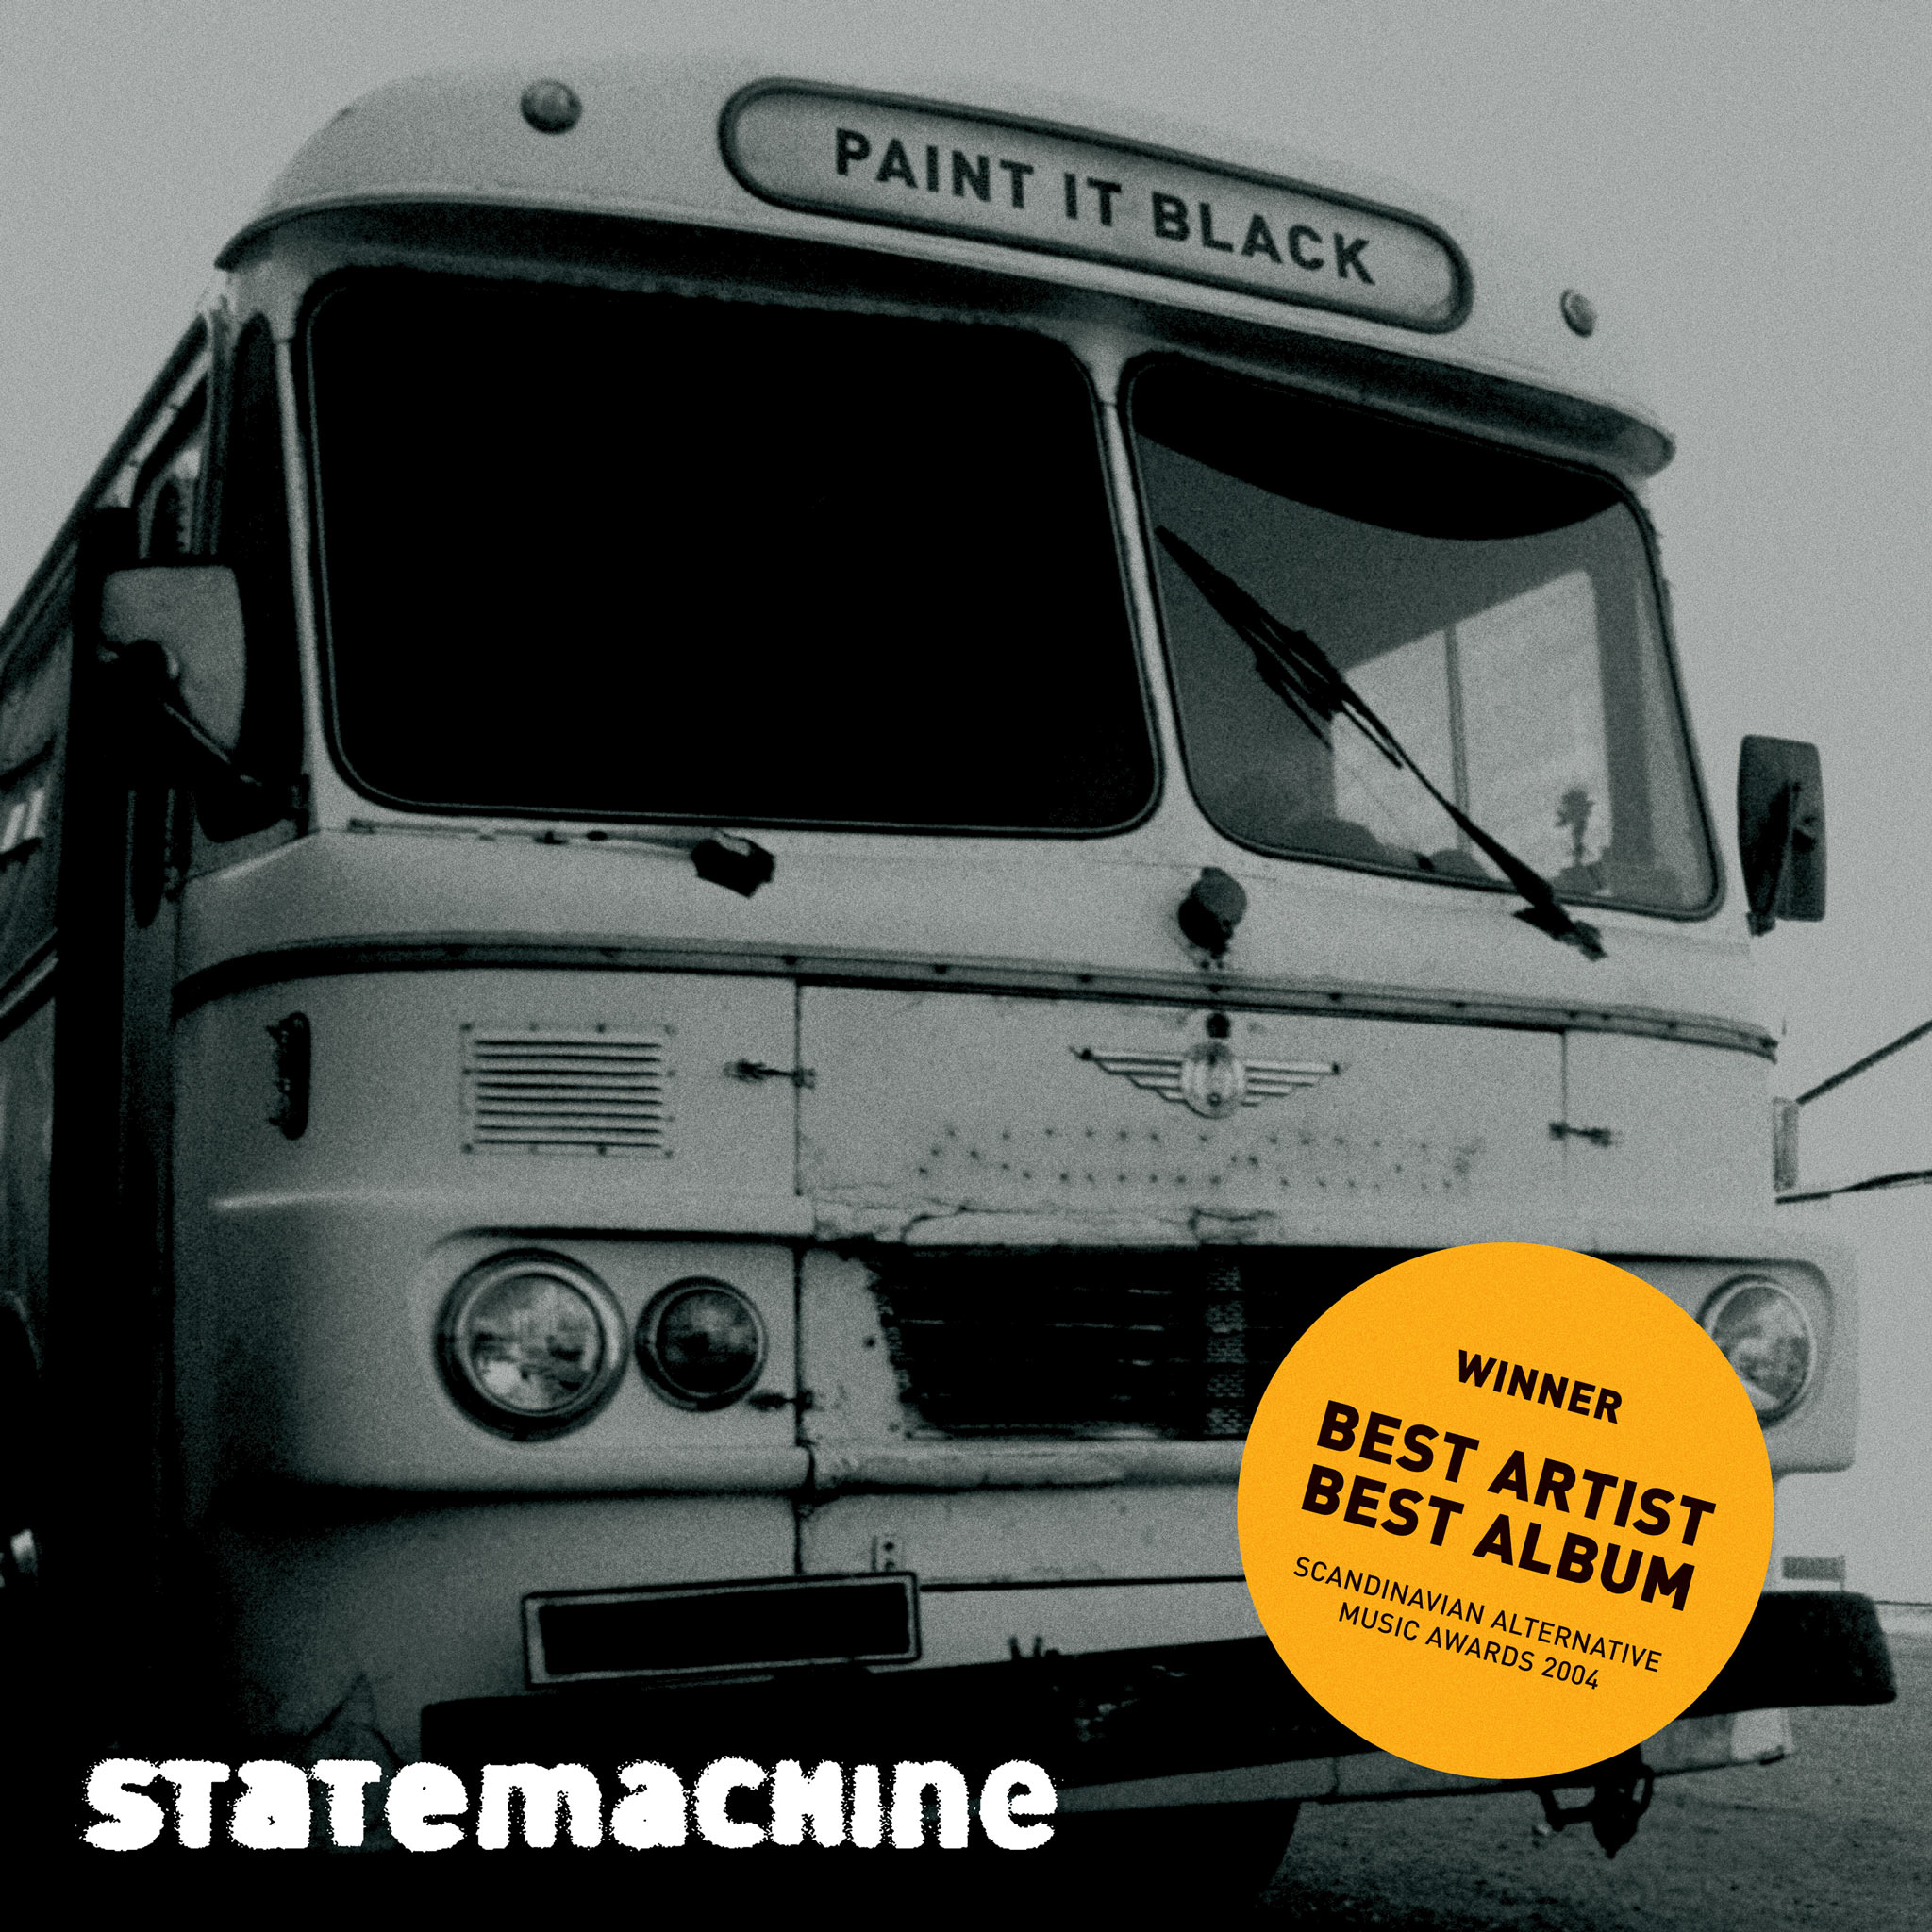 "Statemachine ""Paint It Black"" [single] cover art"